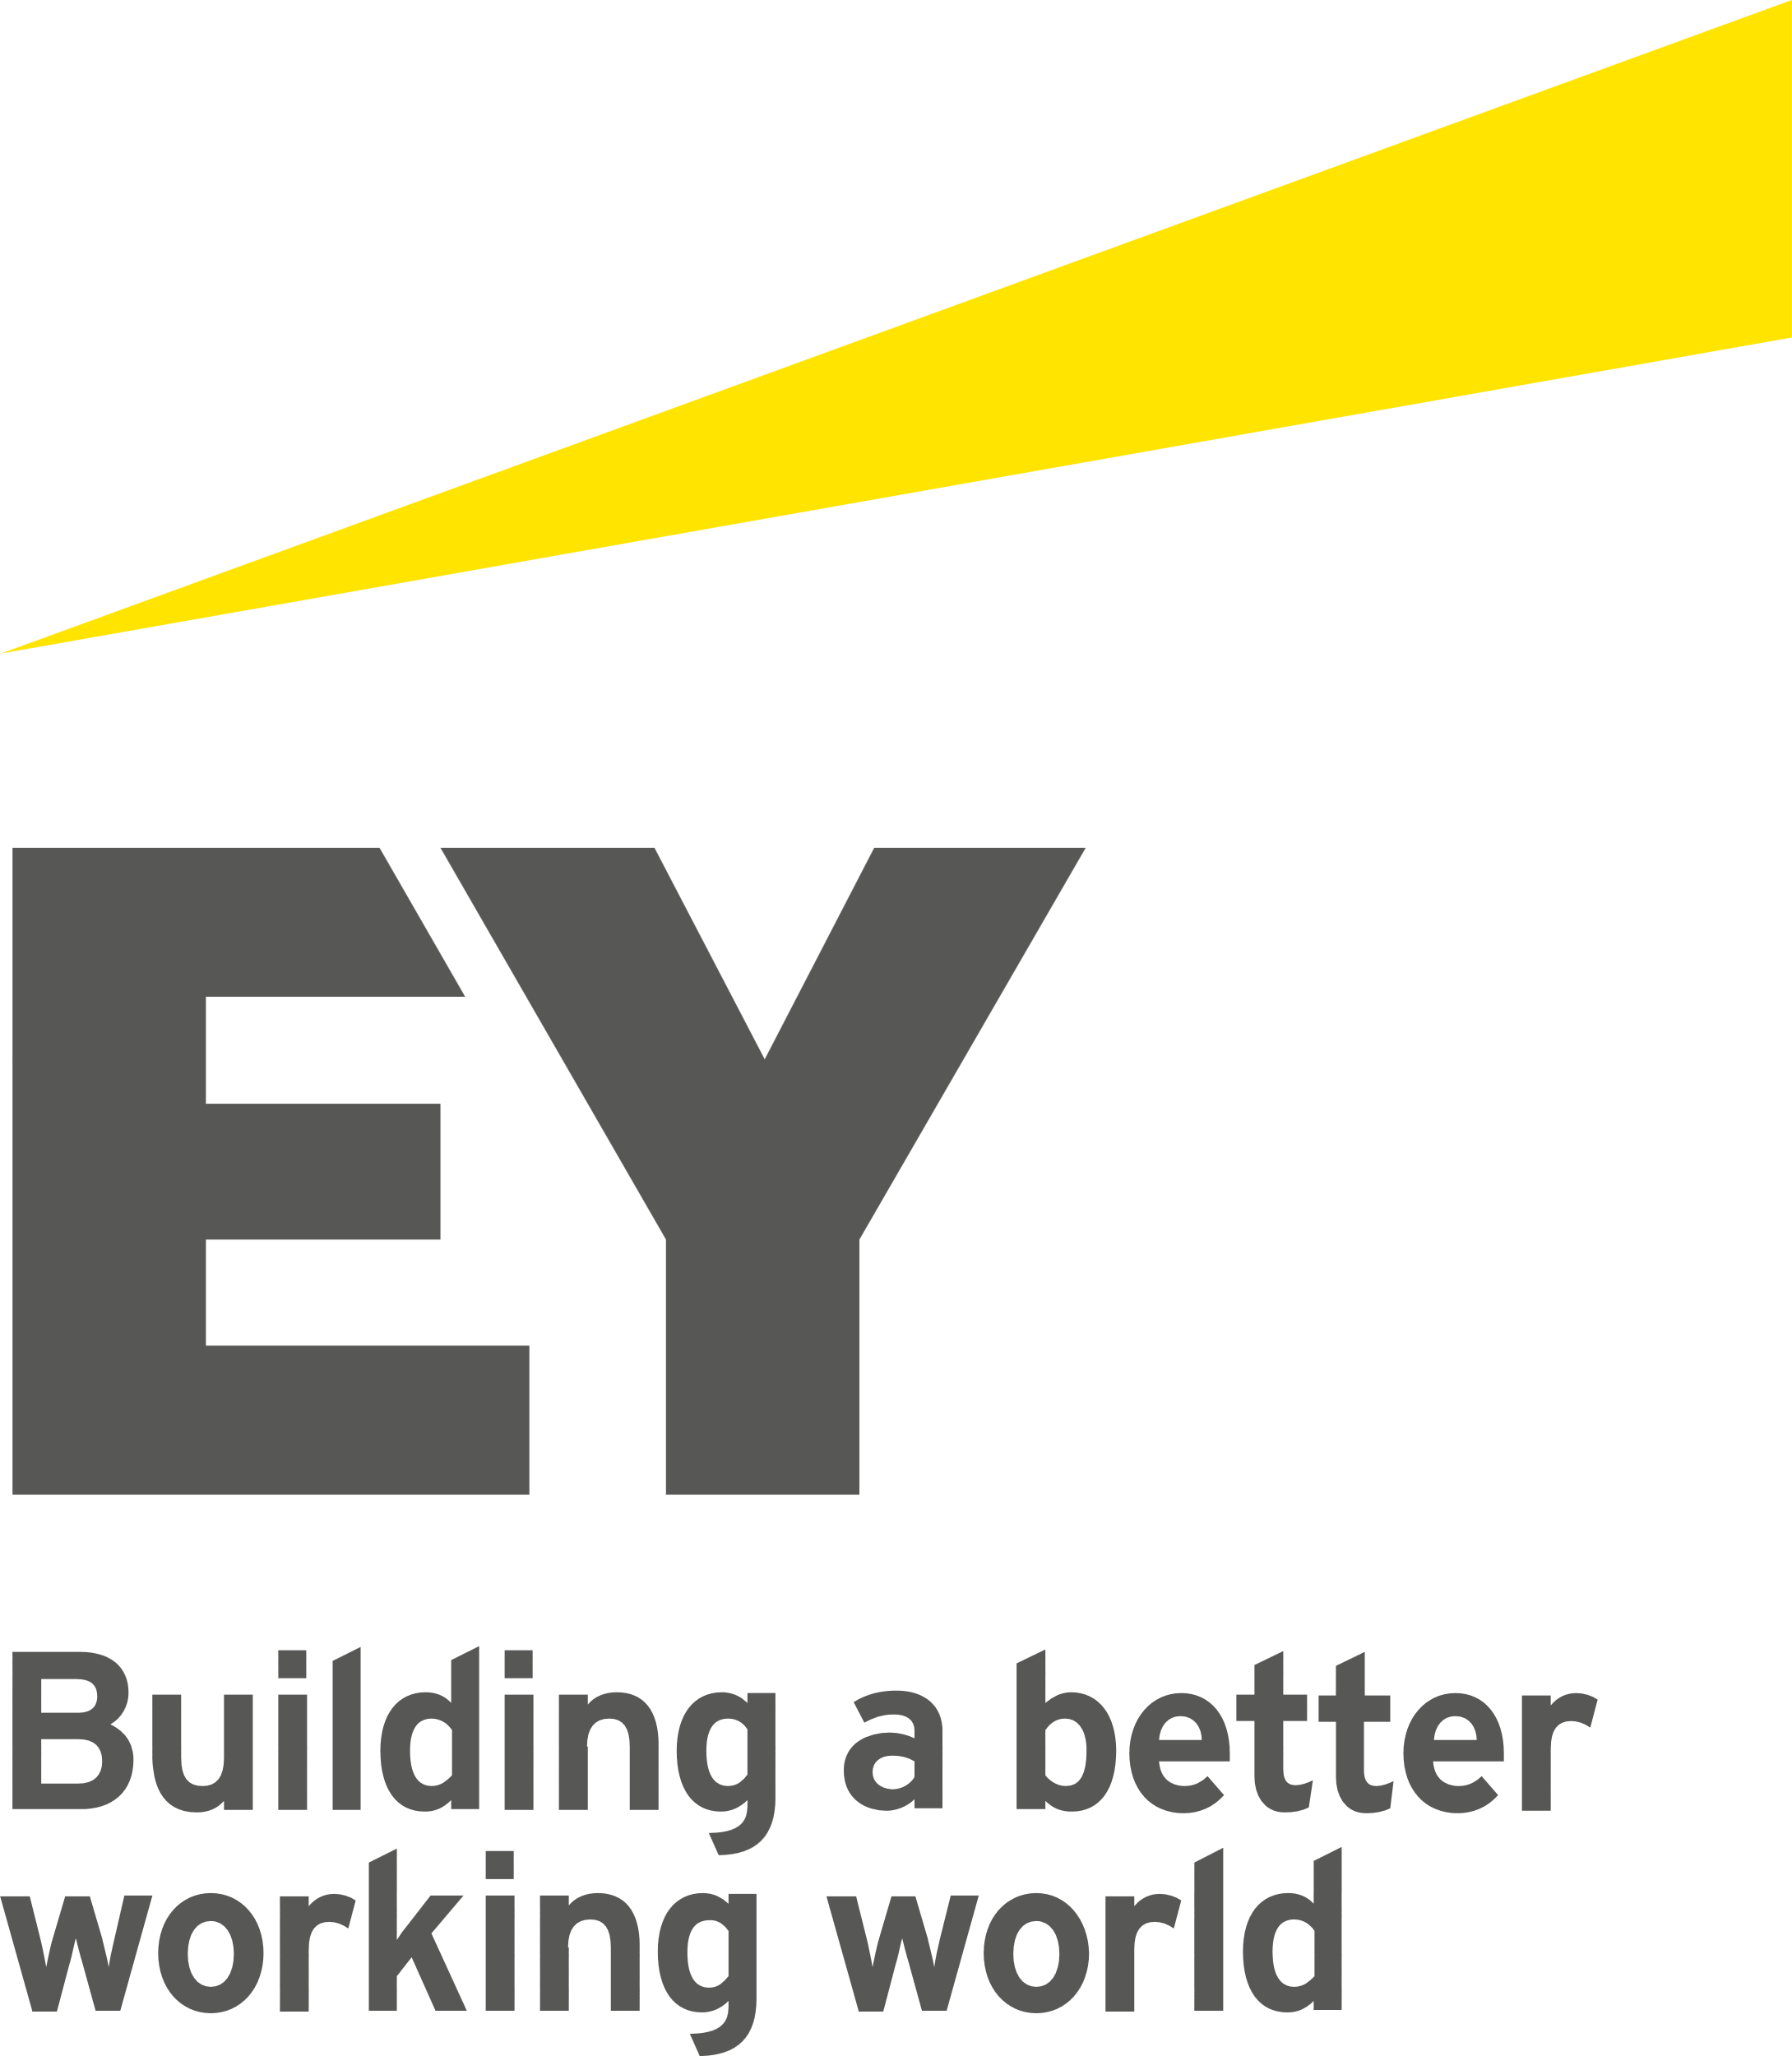 ernst-young-building-a-better-working-world.png